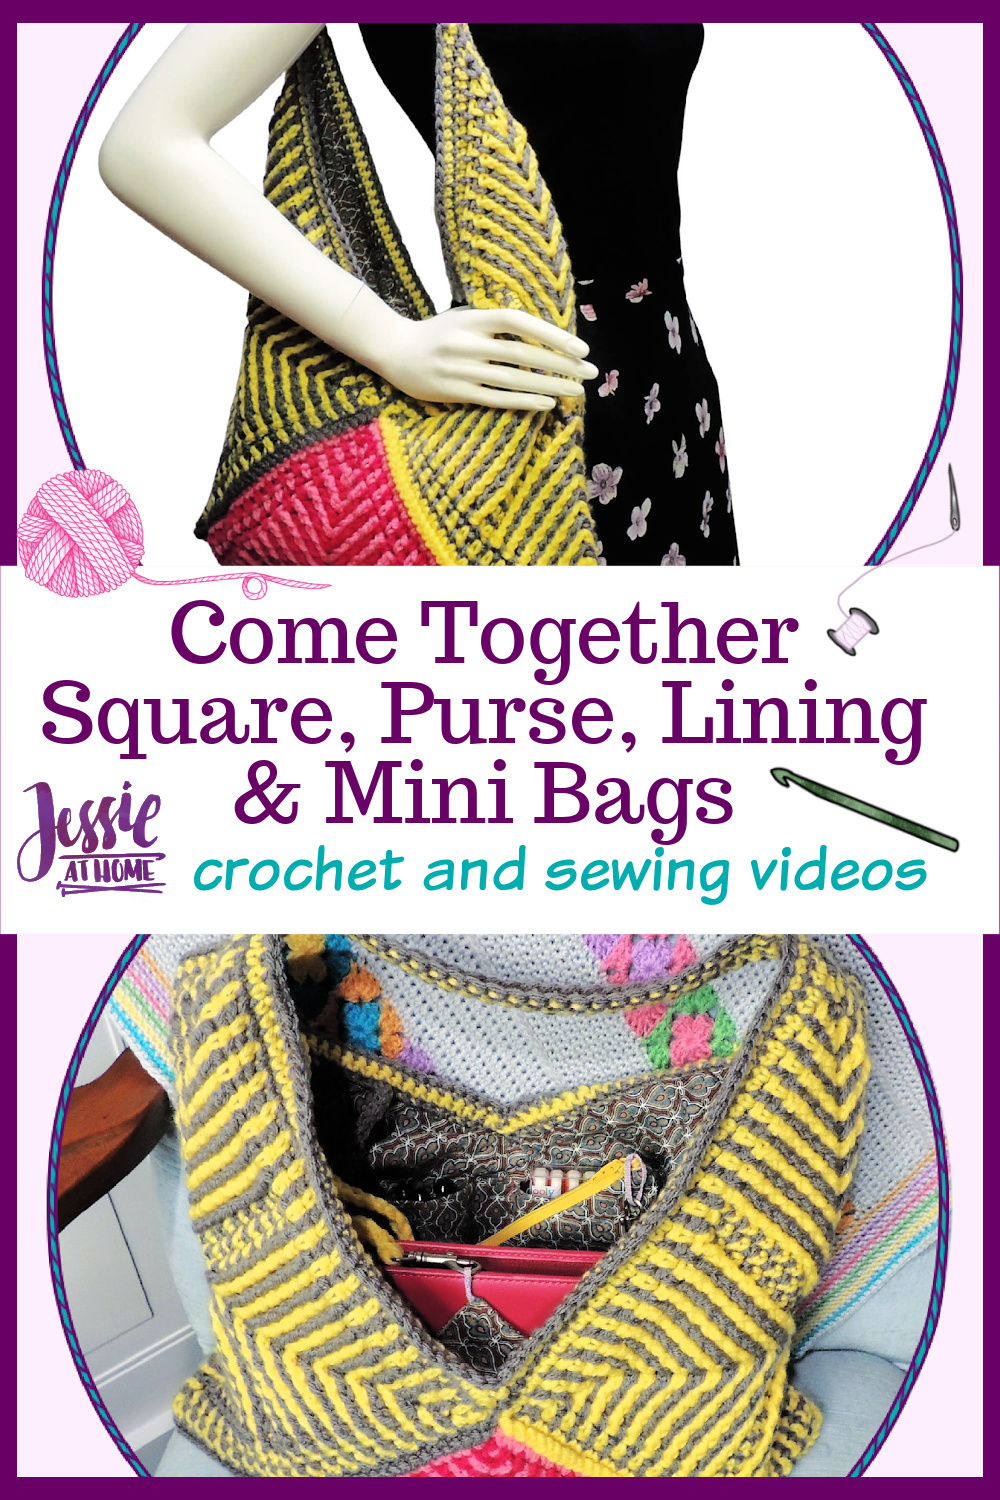 Come Together Video Tutorials - Square and Purse, including Lining & Mini Bags